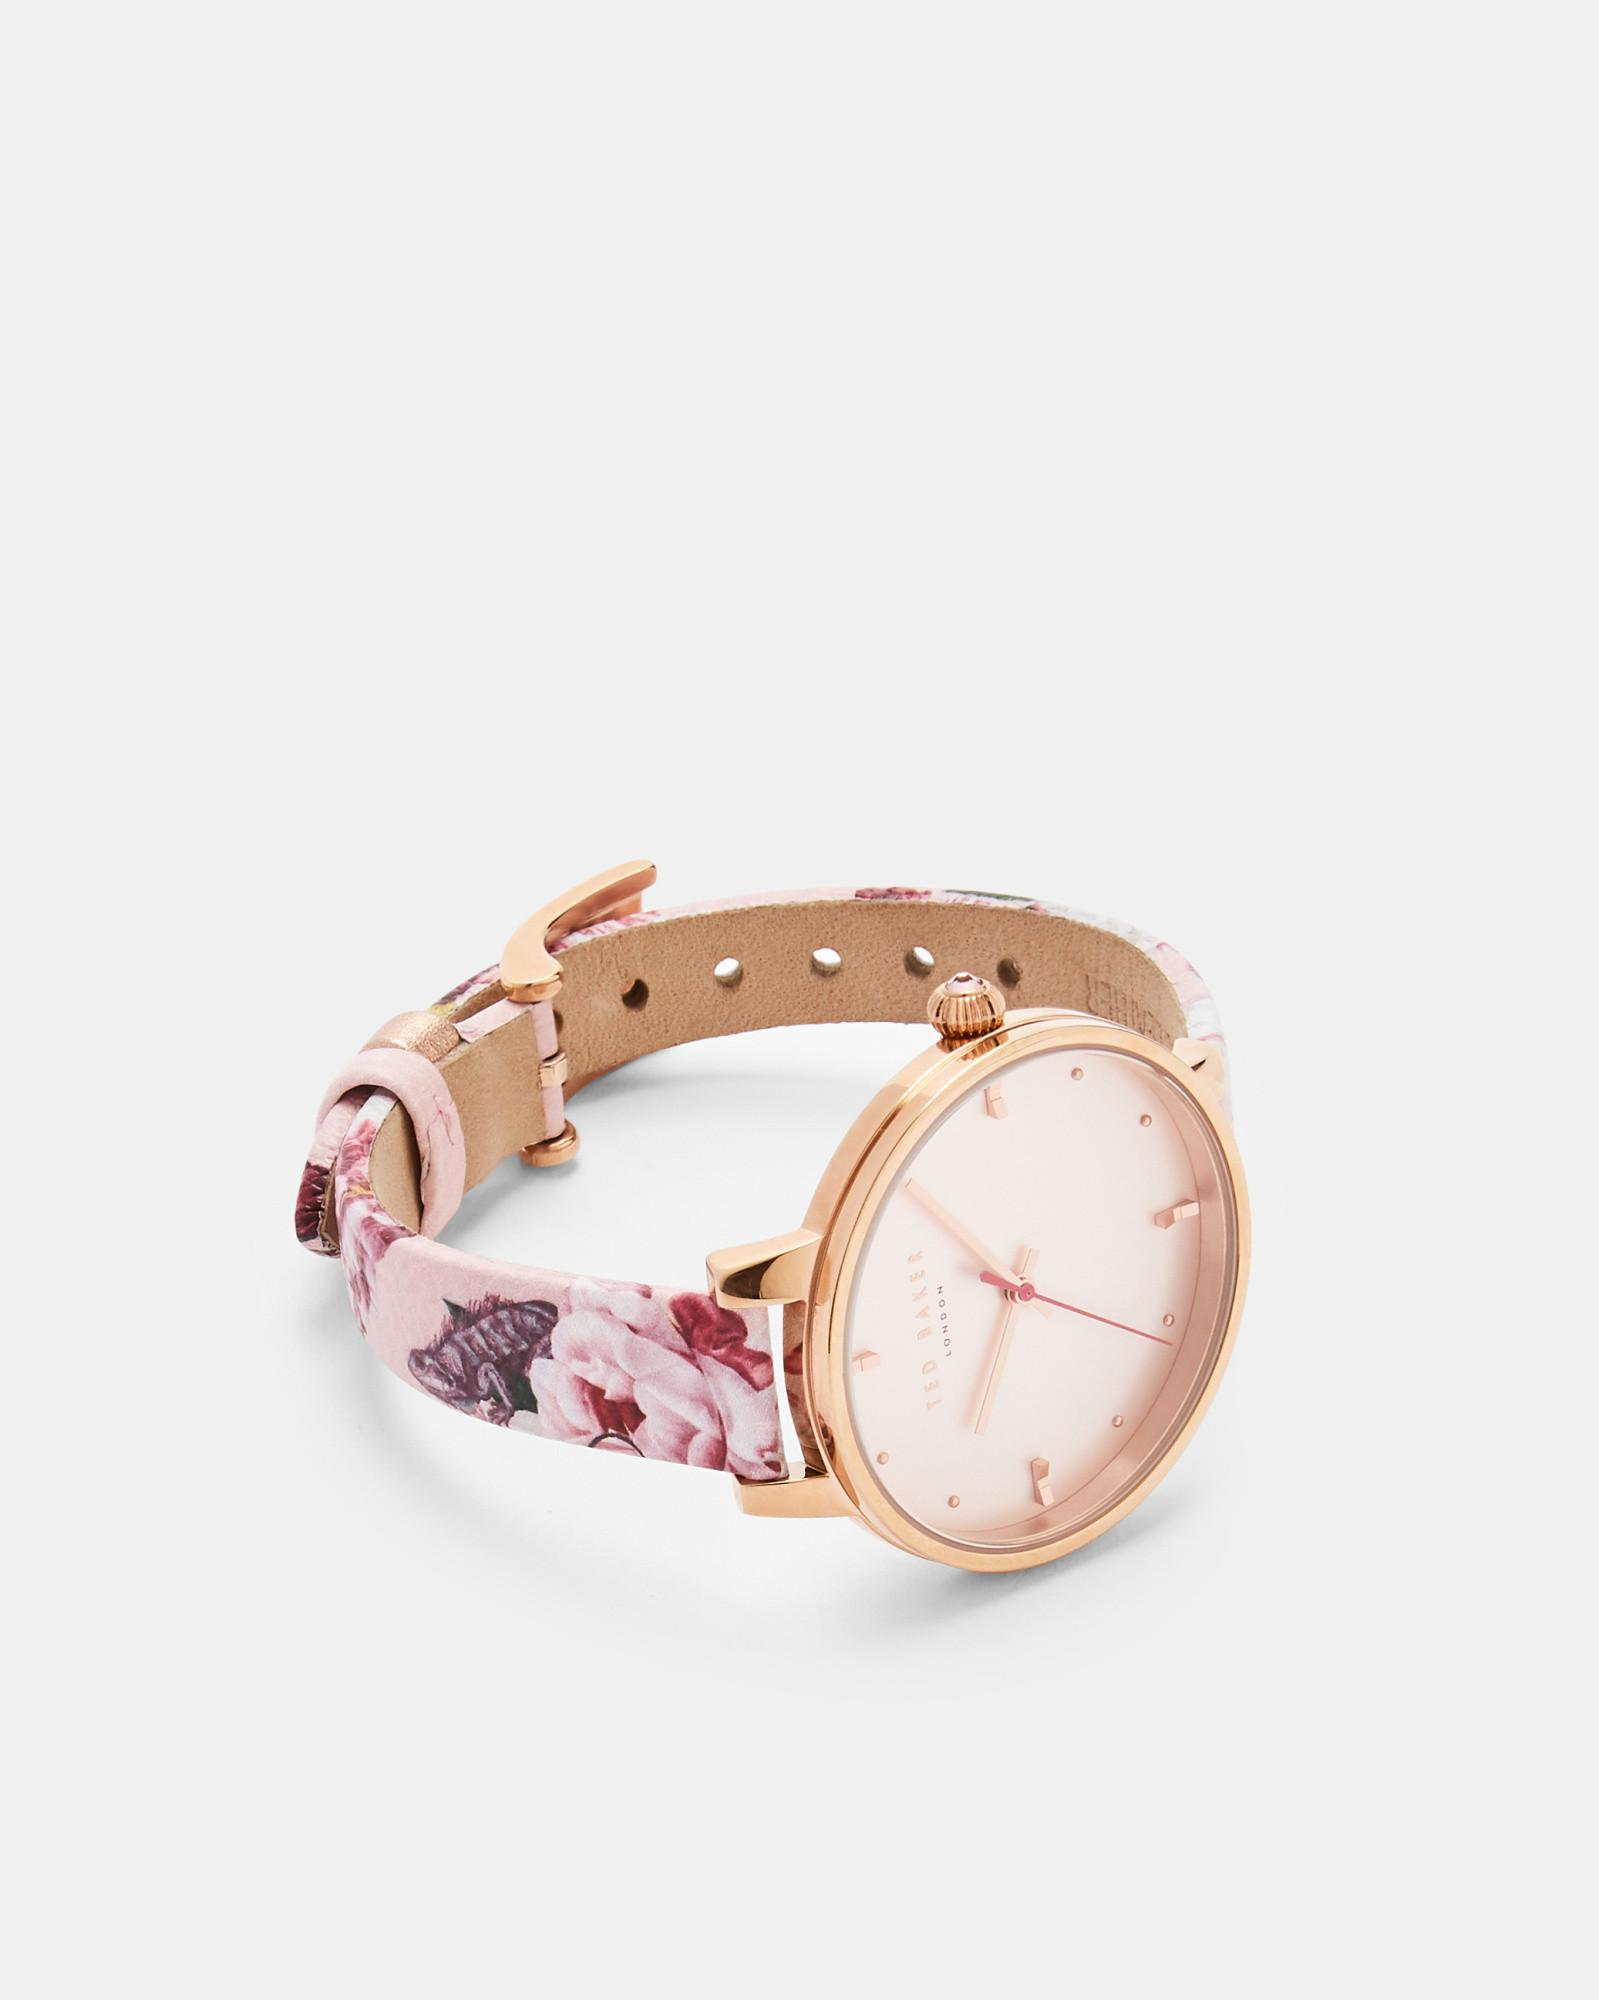 900bf30b3 Lyst - Ted Baker Iguazu Strap Watch in Pink